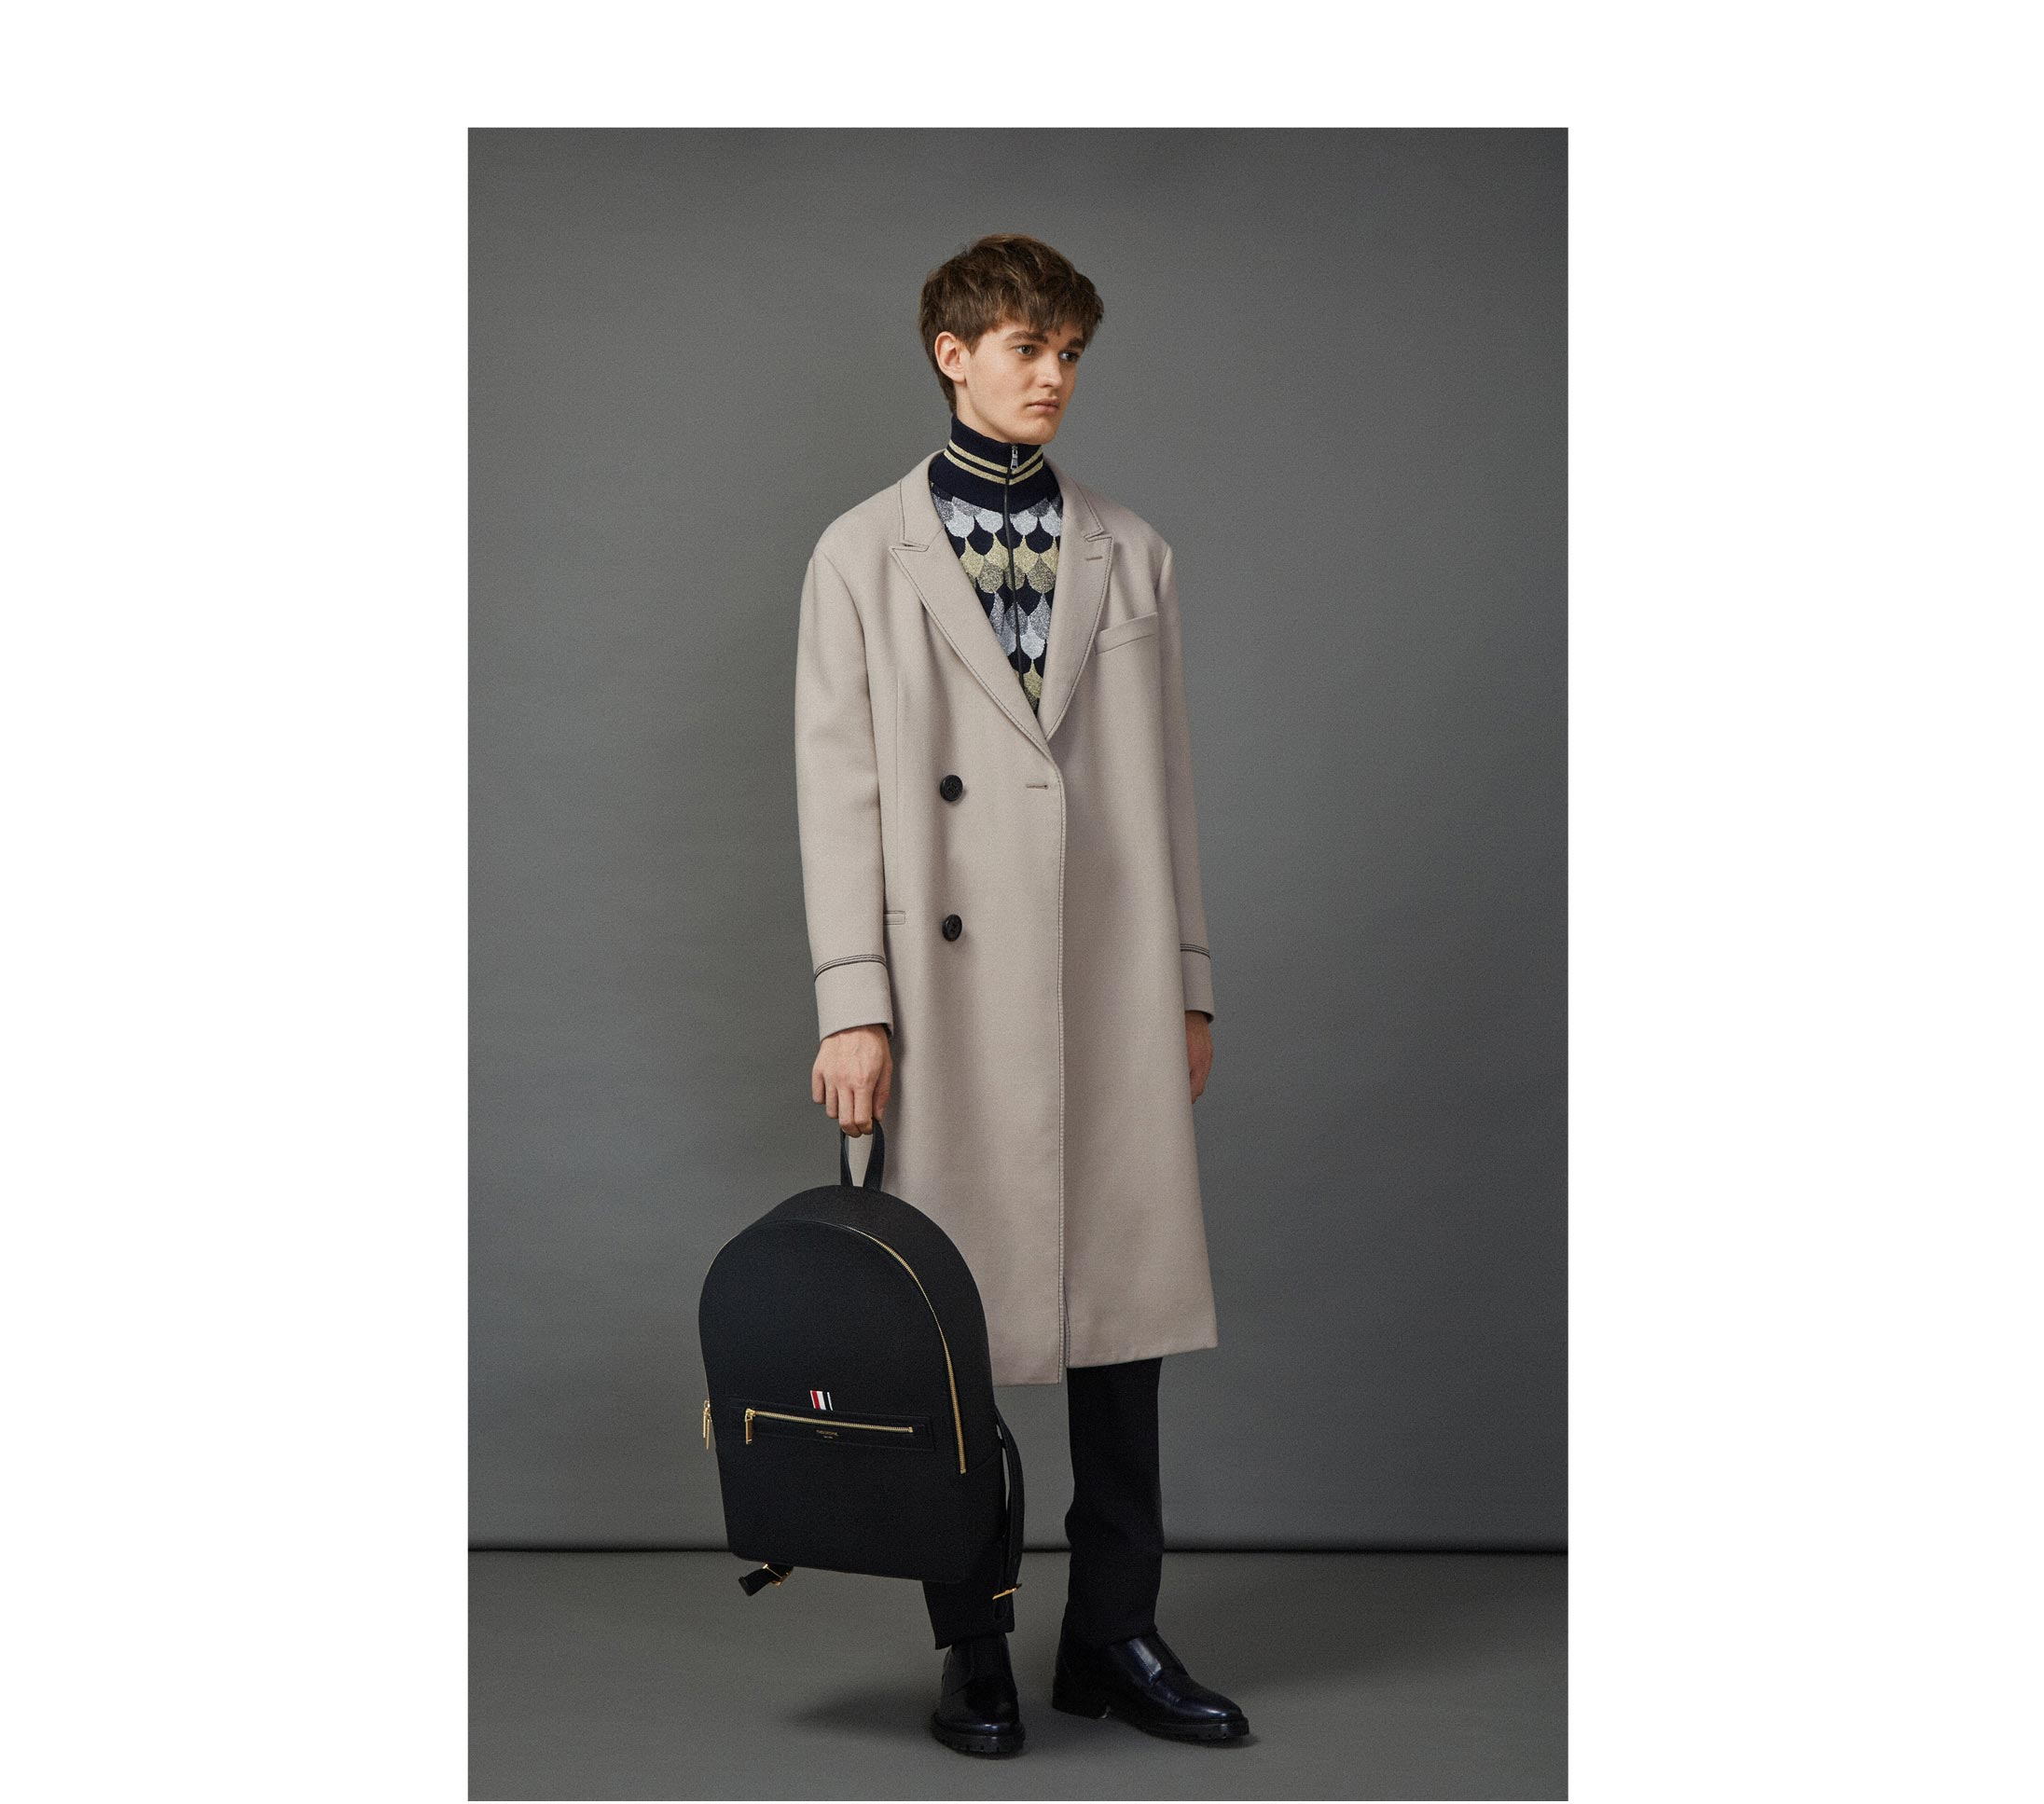 9fd88fded23 LANVIN DOUBVLE BREASTED COAT worn with THOM BROWNE BACKPACK